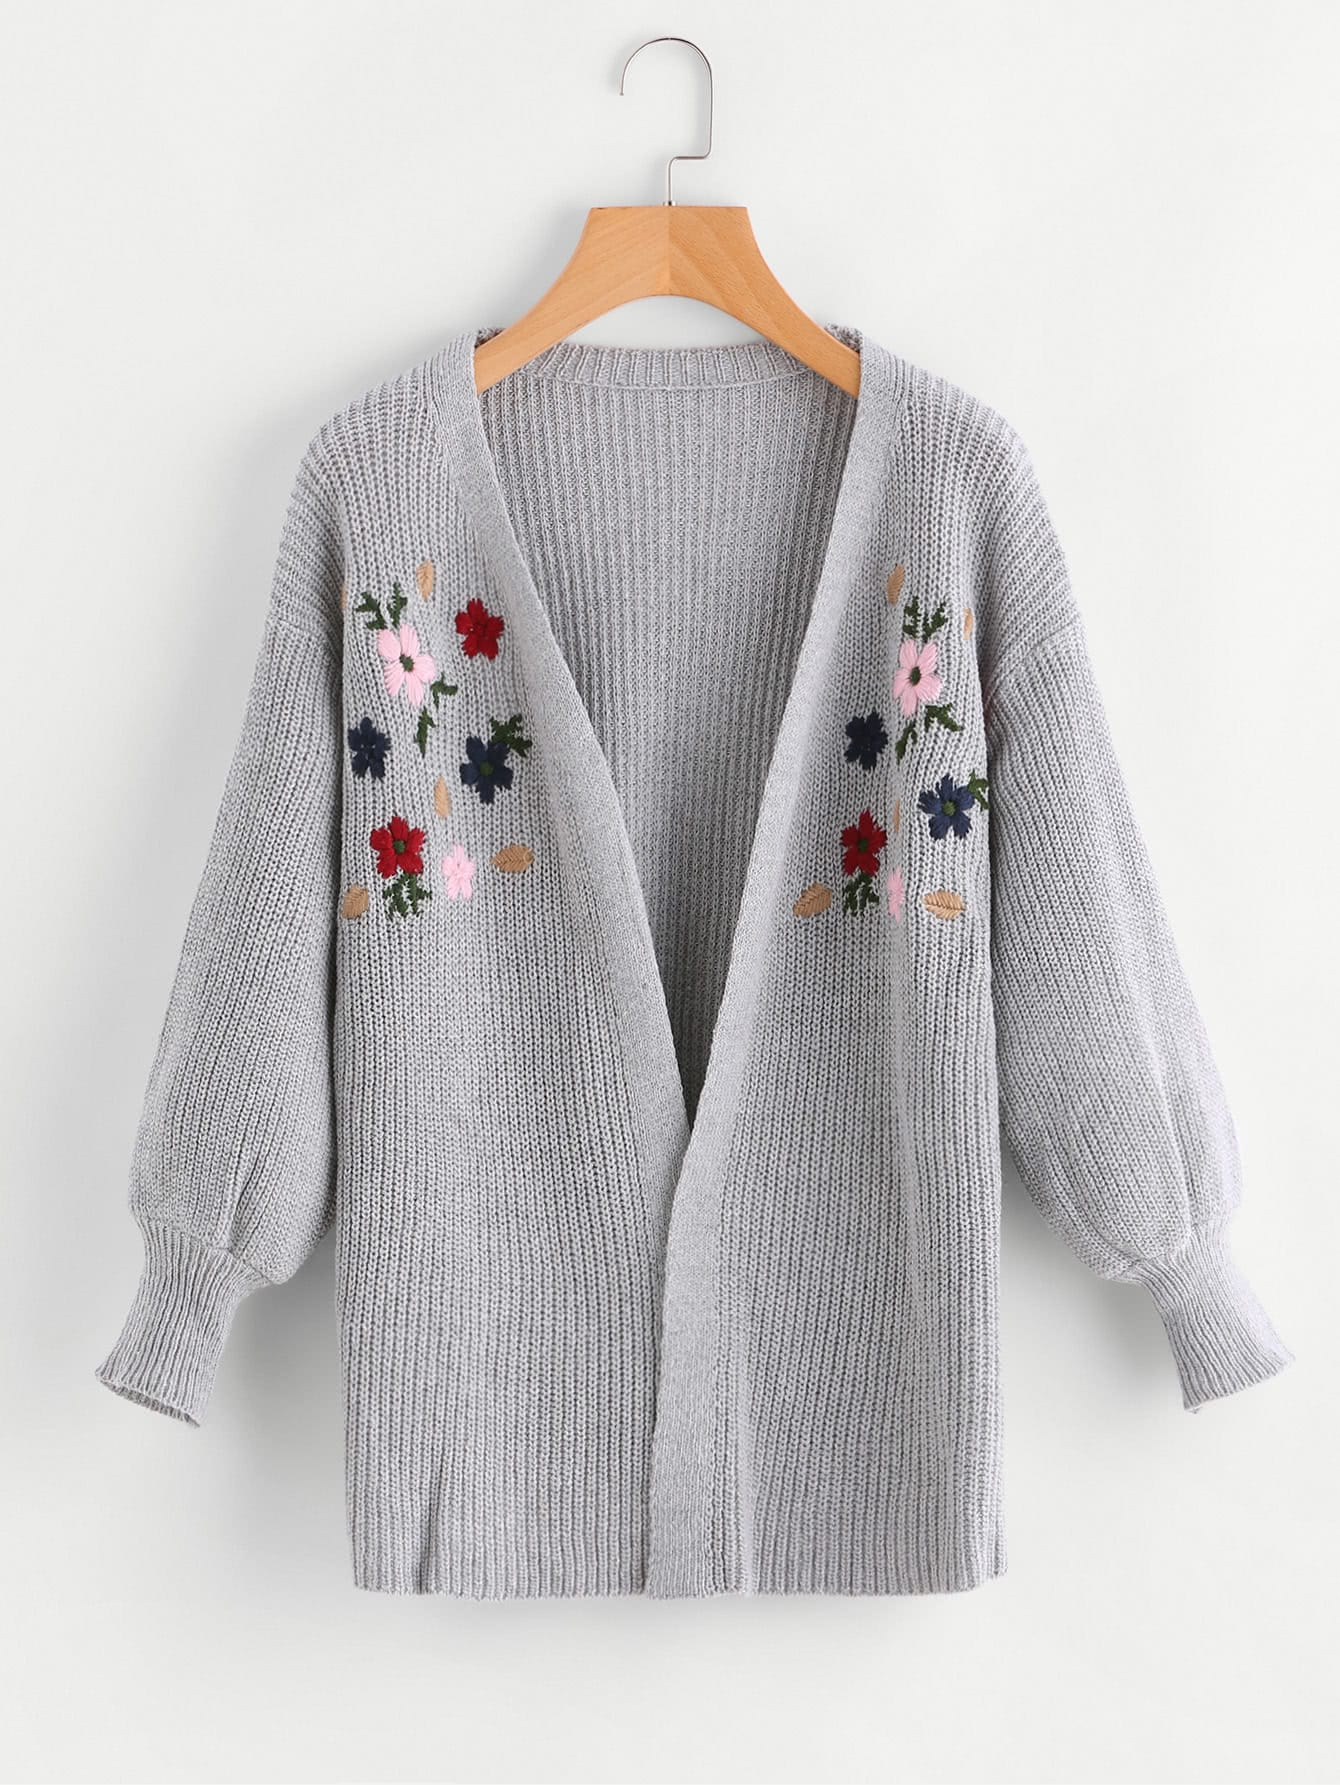 Flower Embroidered Drop Shoulder Sweater cartoon embroidered sweater